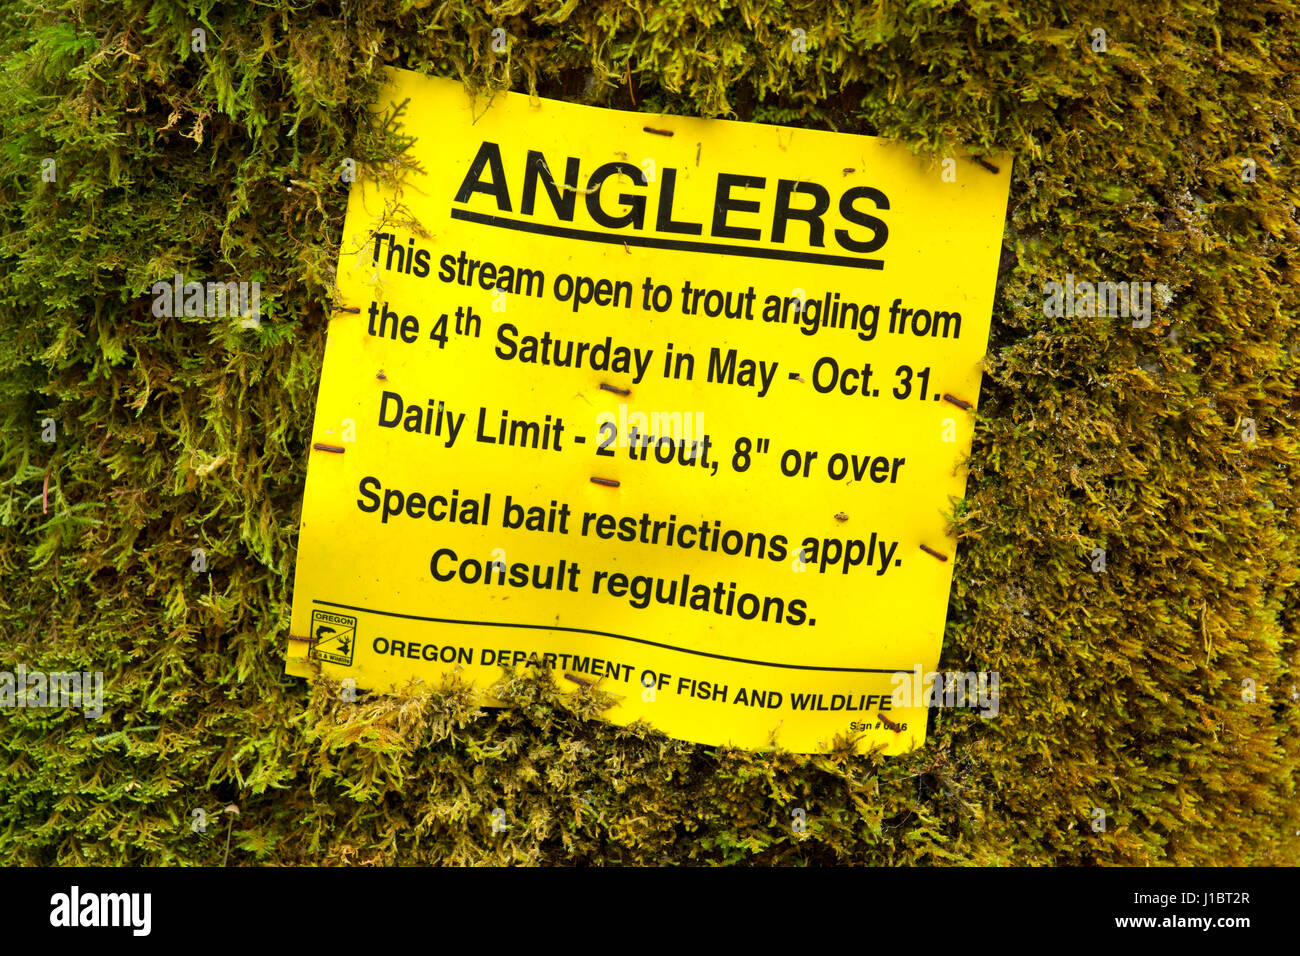 Fishing regulation sign at Ermie Walters Boat Ramp, Siuslaw National Forest, Oregon - Stock Image